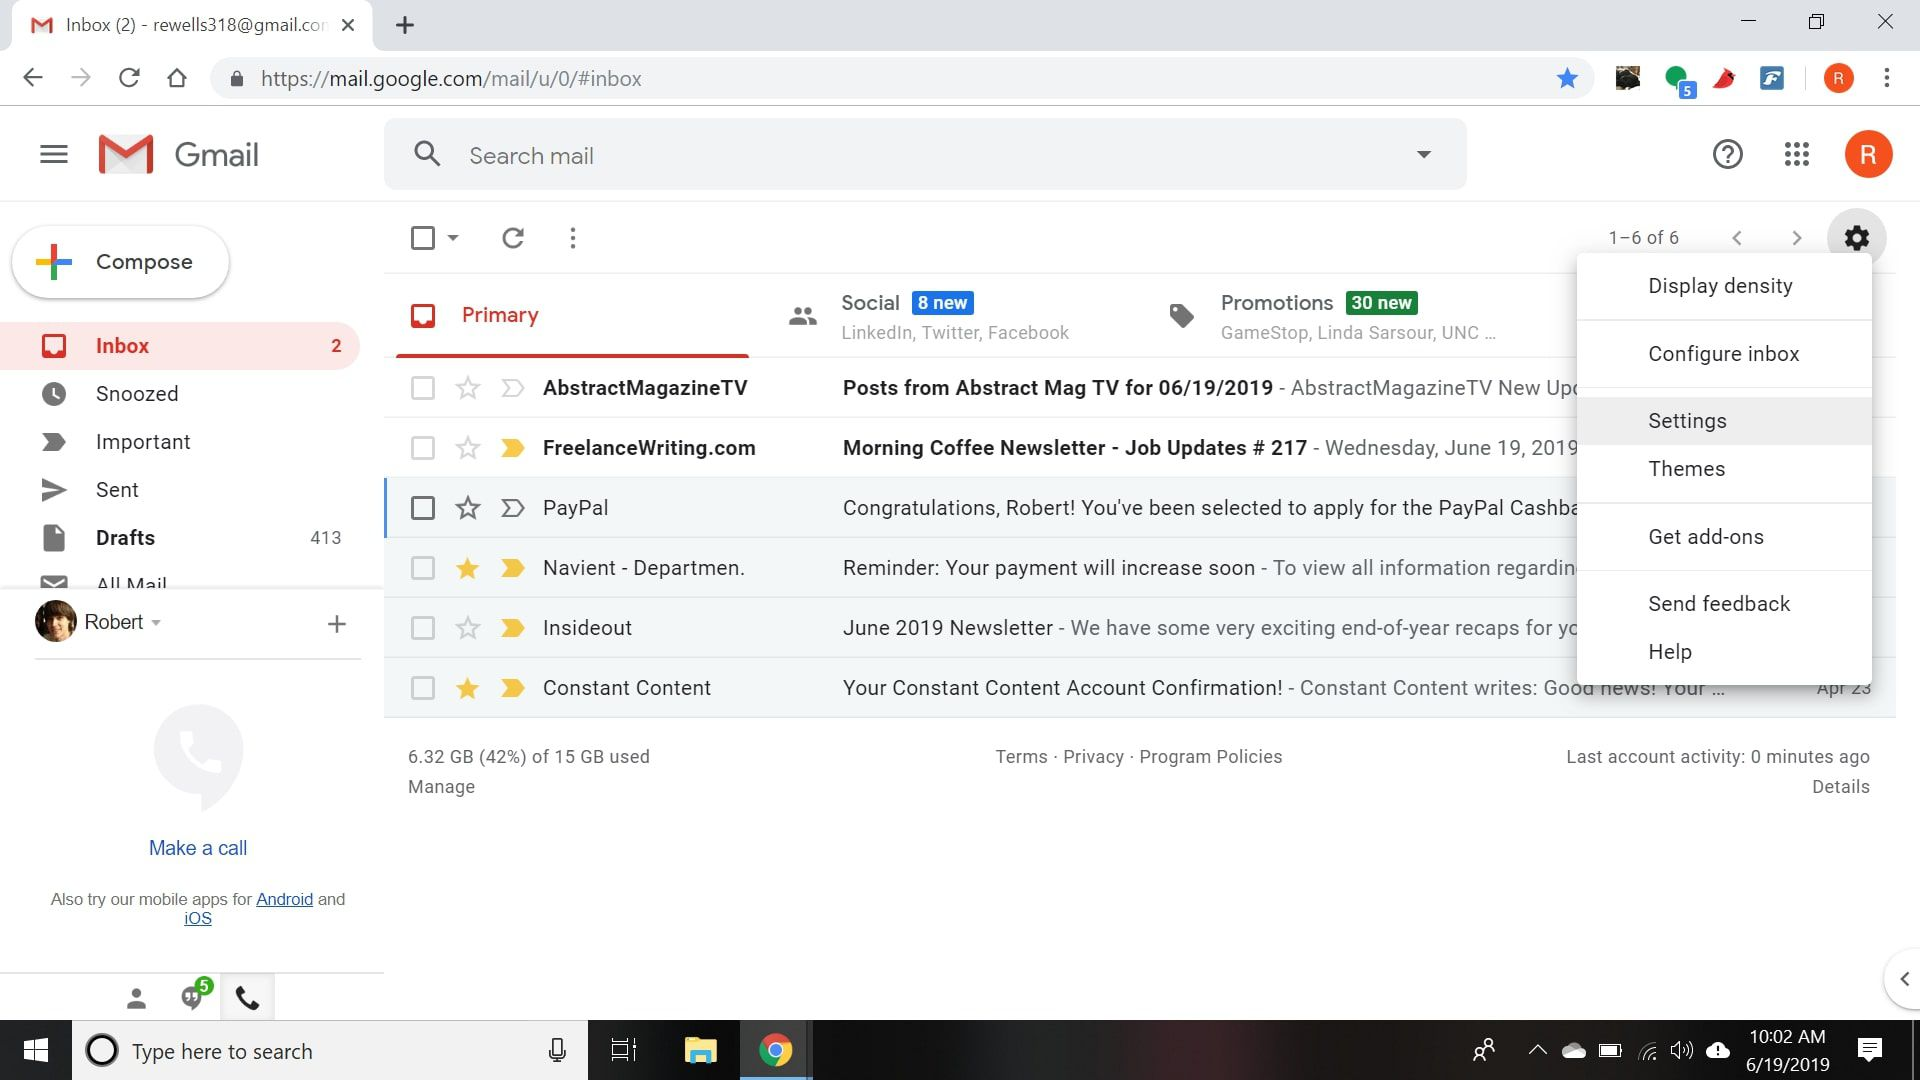 How to Get New Mail Desktop Notifications for Gmail